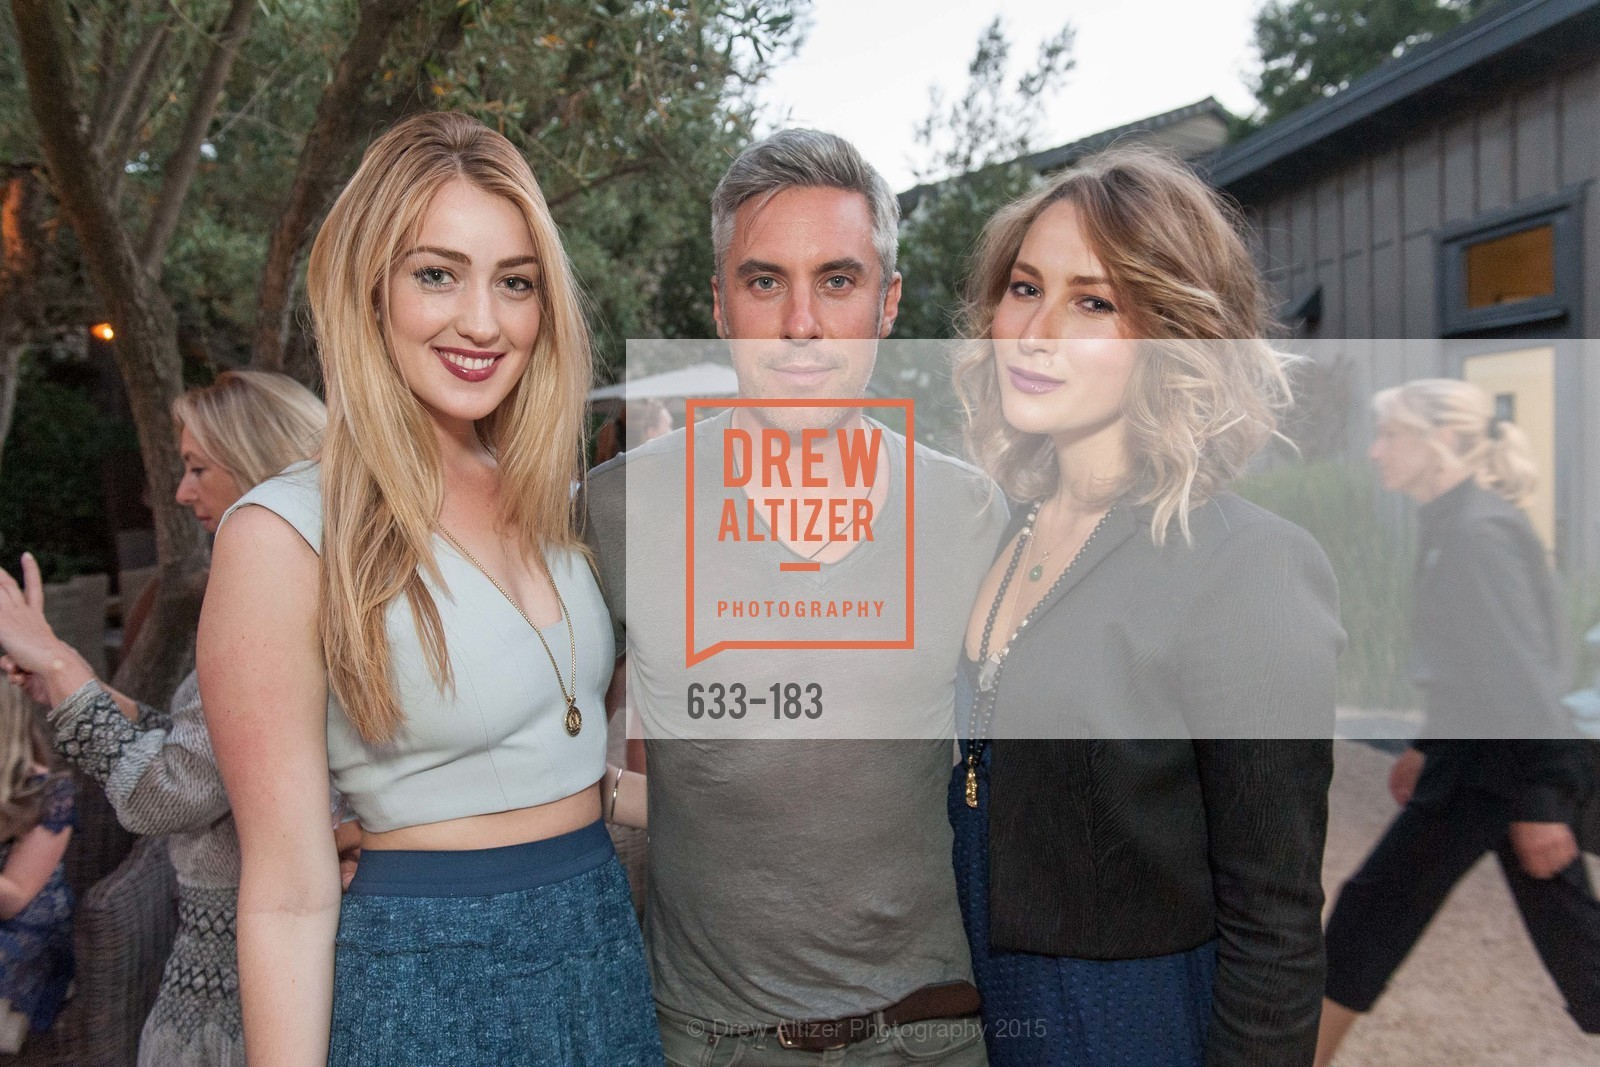 Alison Dibella, Eoin Harrington, Svetlana Kolesnikova, Oyster Cup Polo Tournament Preview Party Hosted by Cerro Pampa Polo Club and Stick & Ball, Ma(i)sonry. 6711 Washington St, June 25th, 2015,Drew Altizer, Drew Altizer Photography, full-service event agency, private events, San Francisco photographer, photographer California